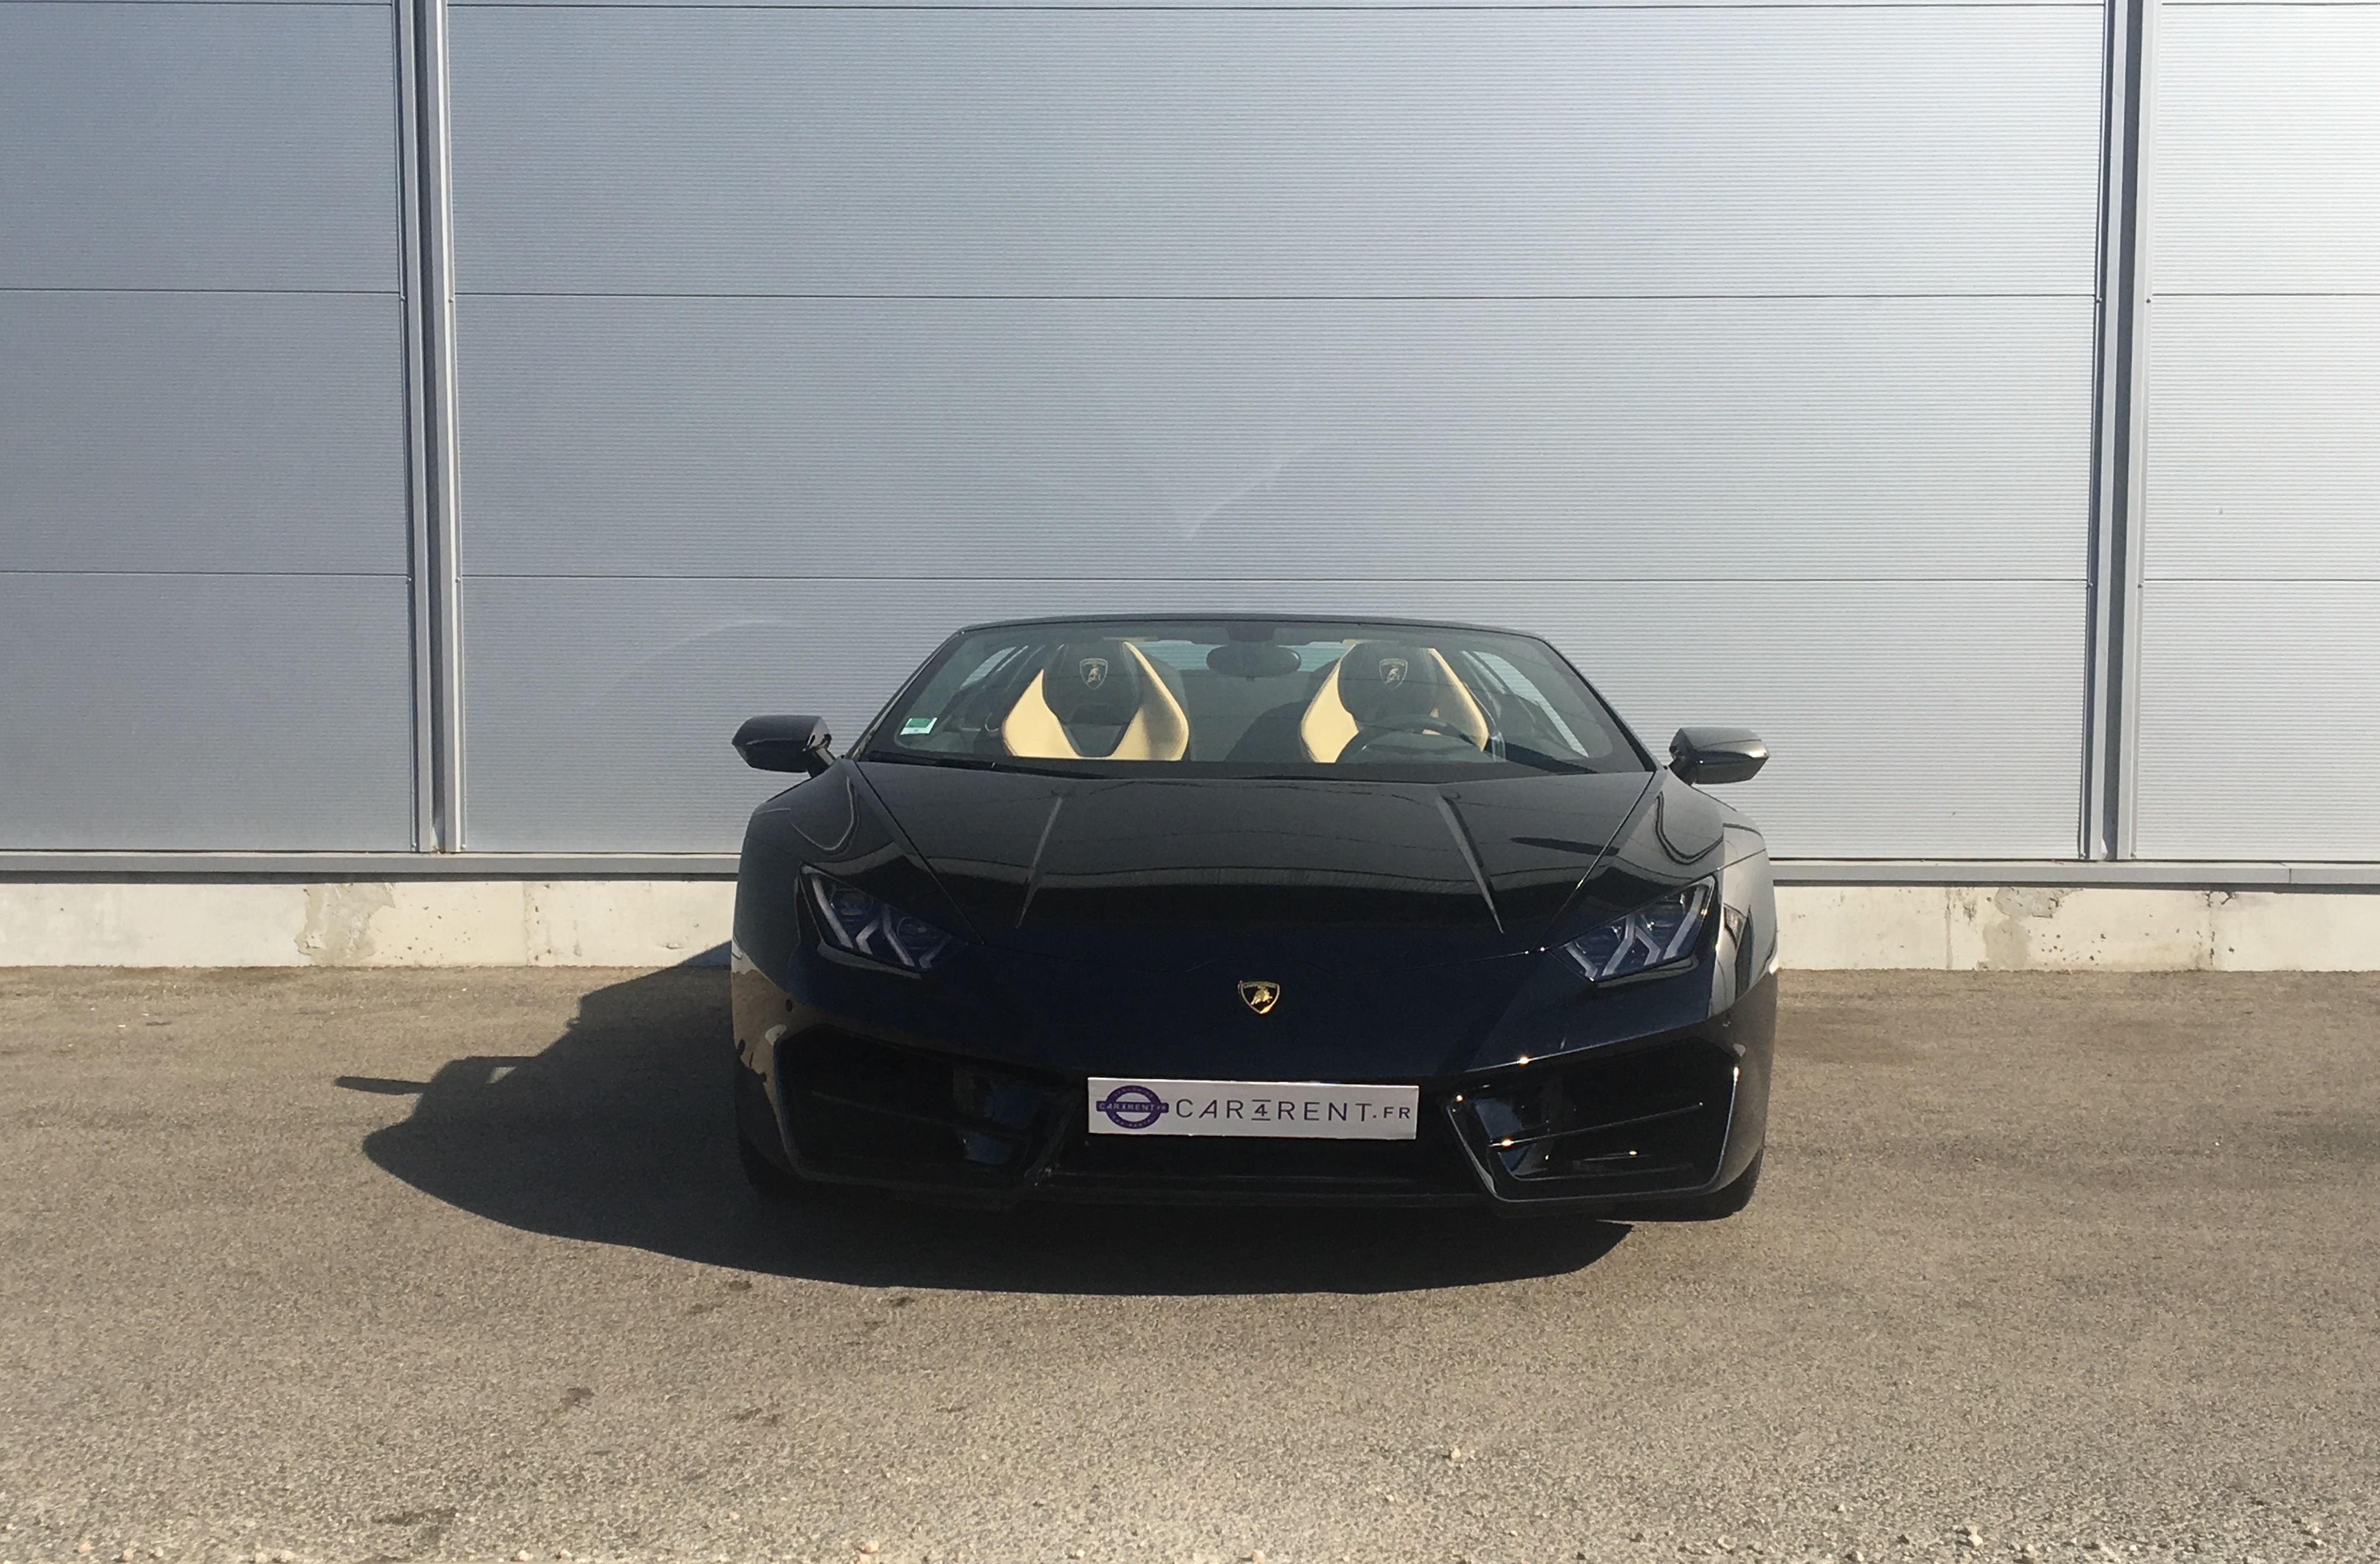 rent lamborghini huracan spyder Car4rent monaco